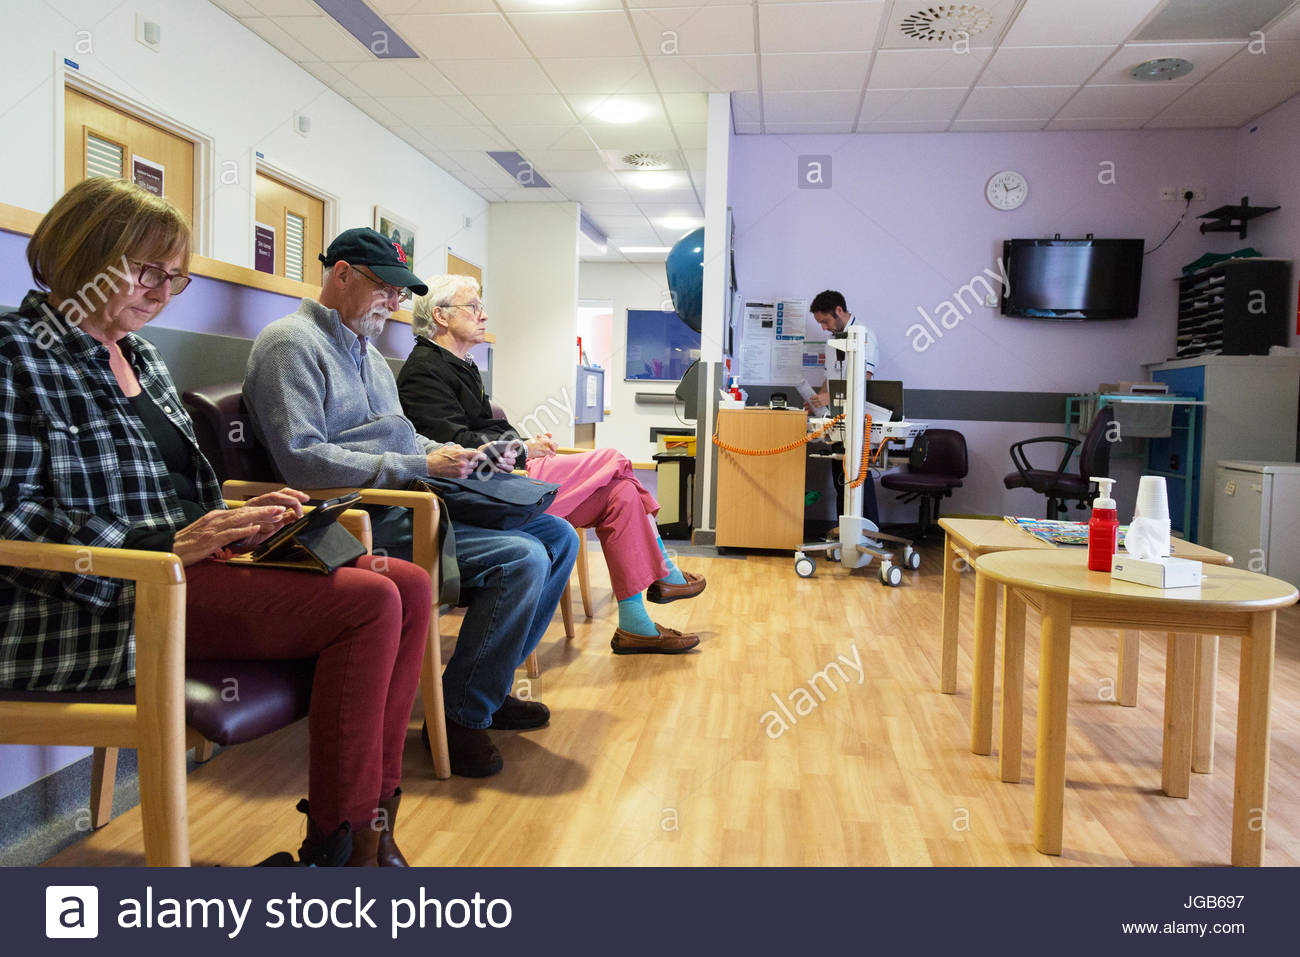 NHS Hospital patients waiting in an outpatient clinic hospital waiting room, John Radcliffe Hospital, Oxford England - Stock Image